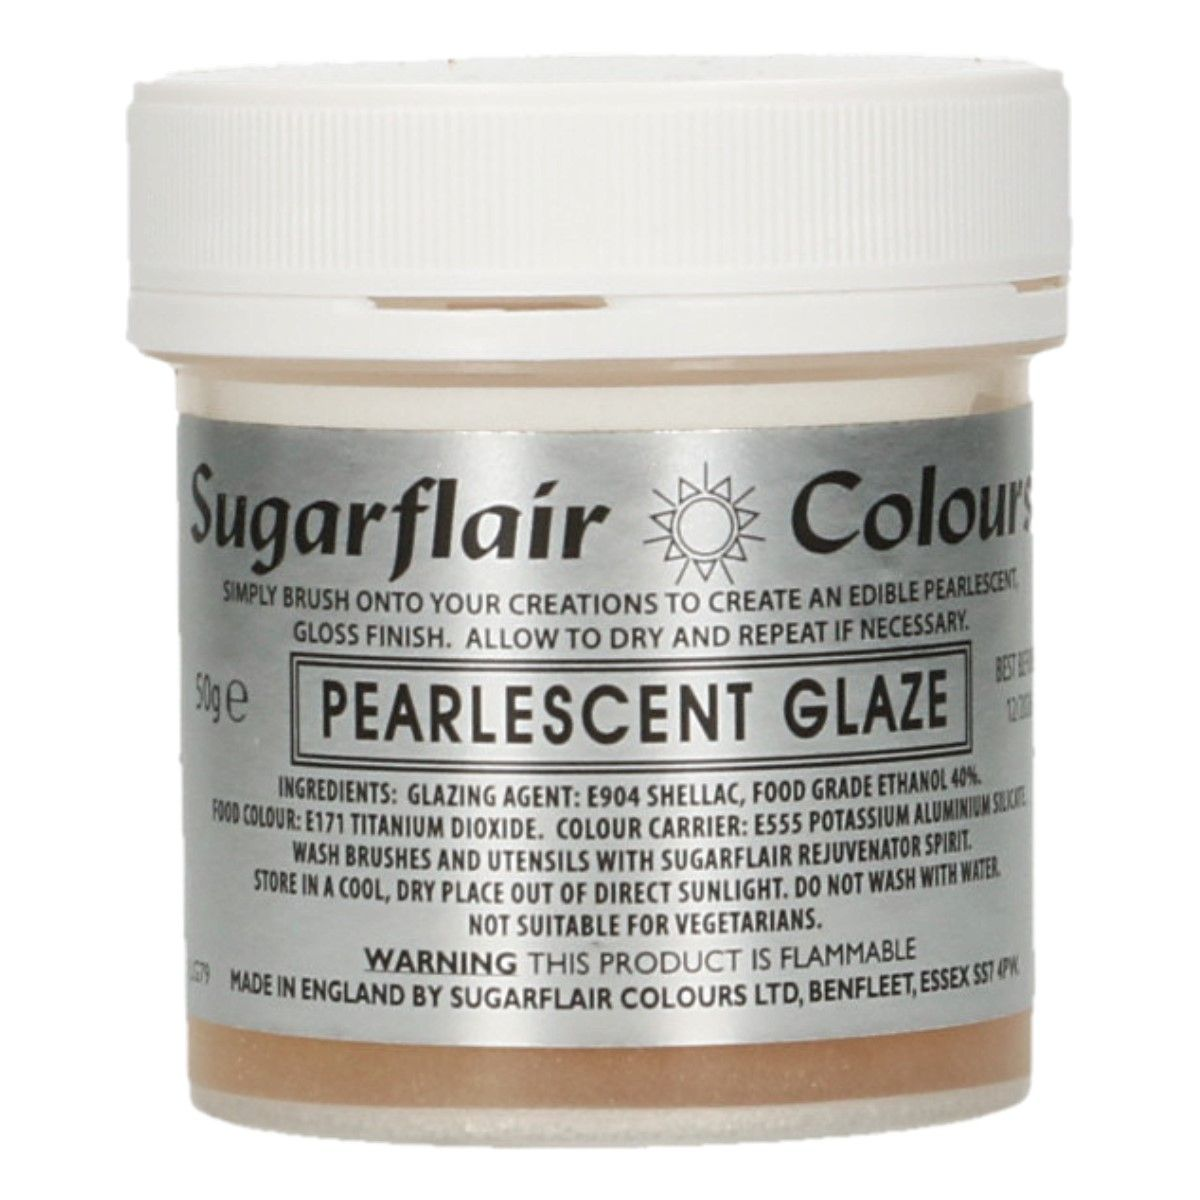 Sugarflair Pearlescent Glaze 50g